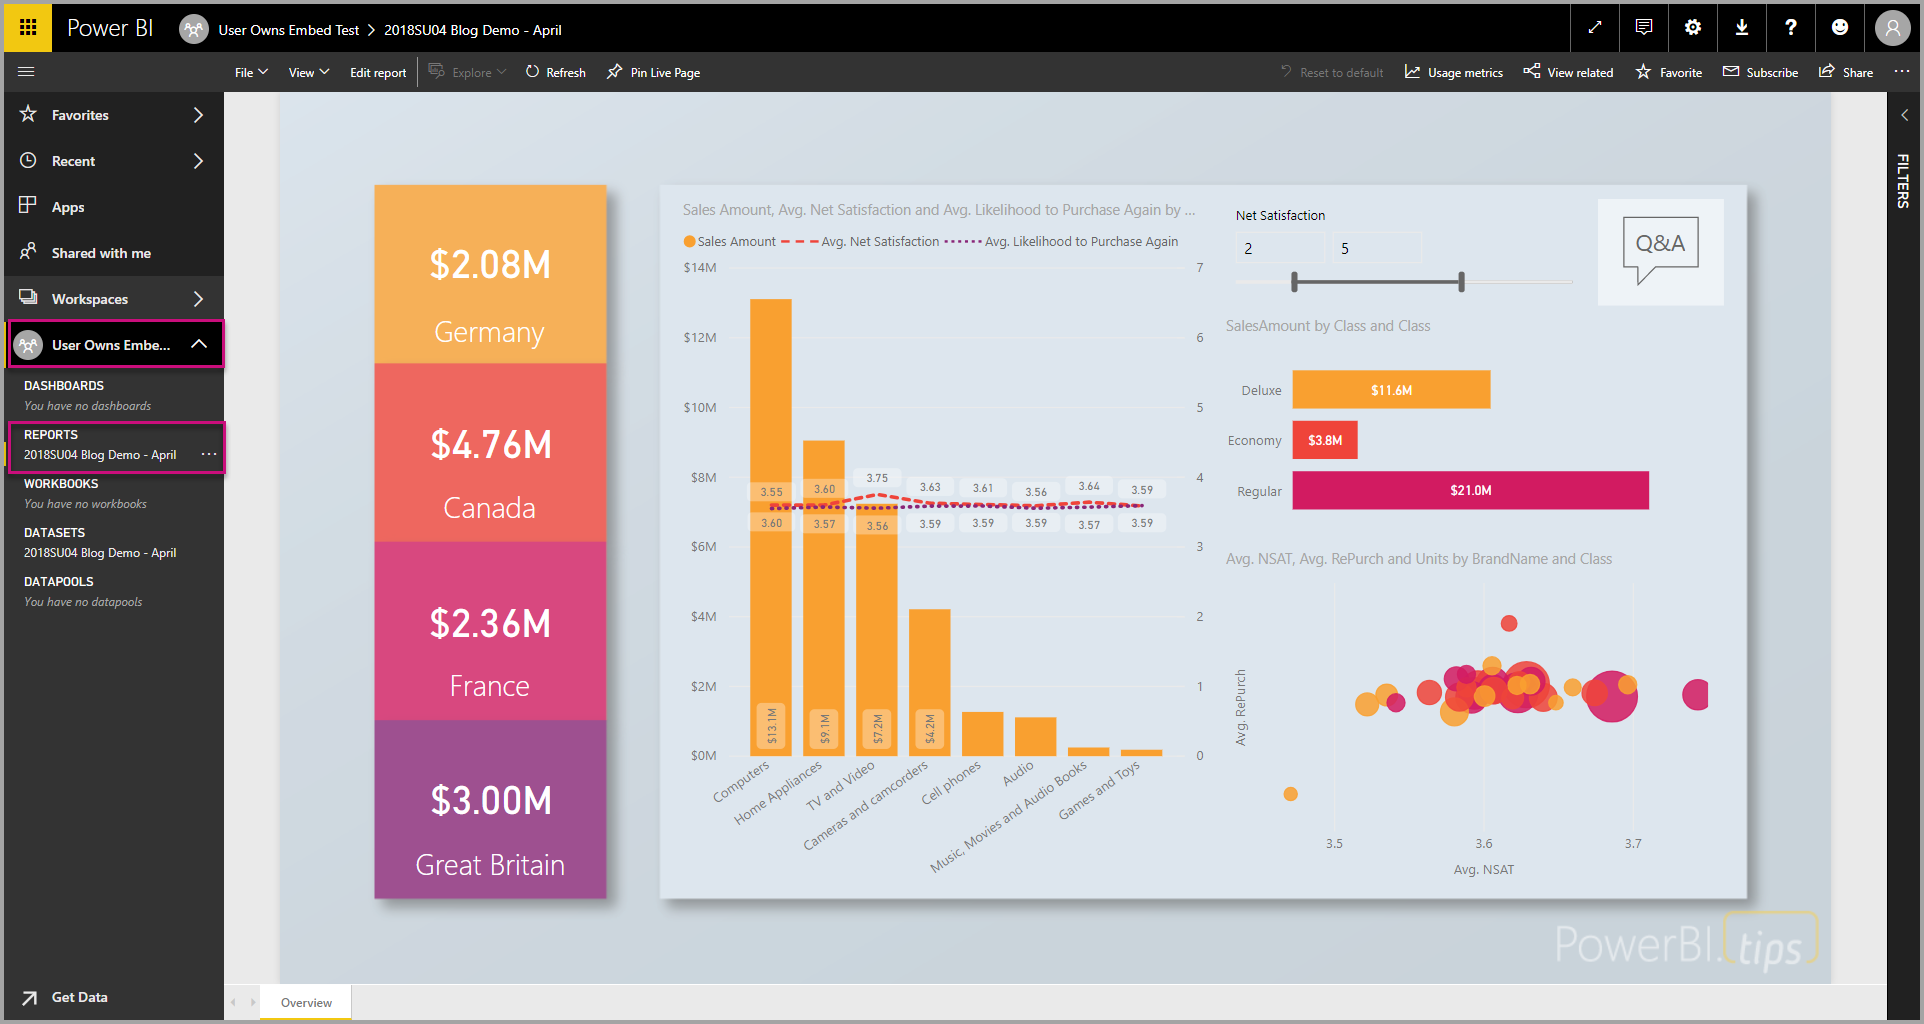 Embedded analytics to embed Power BI content in your application for